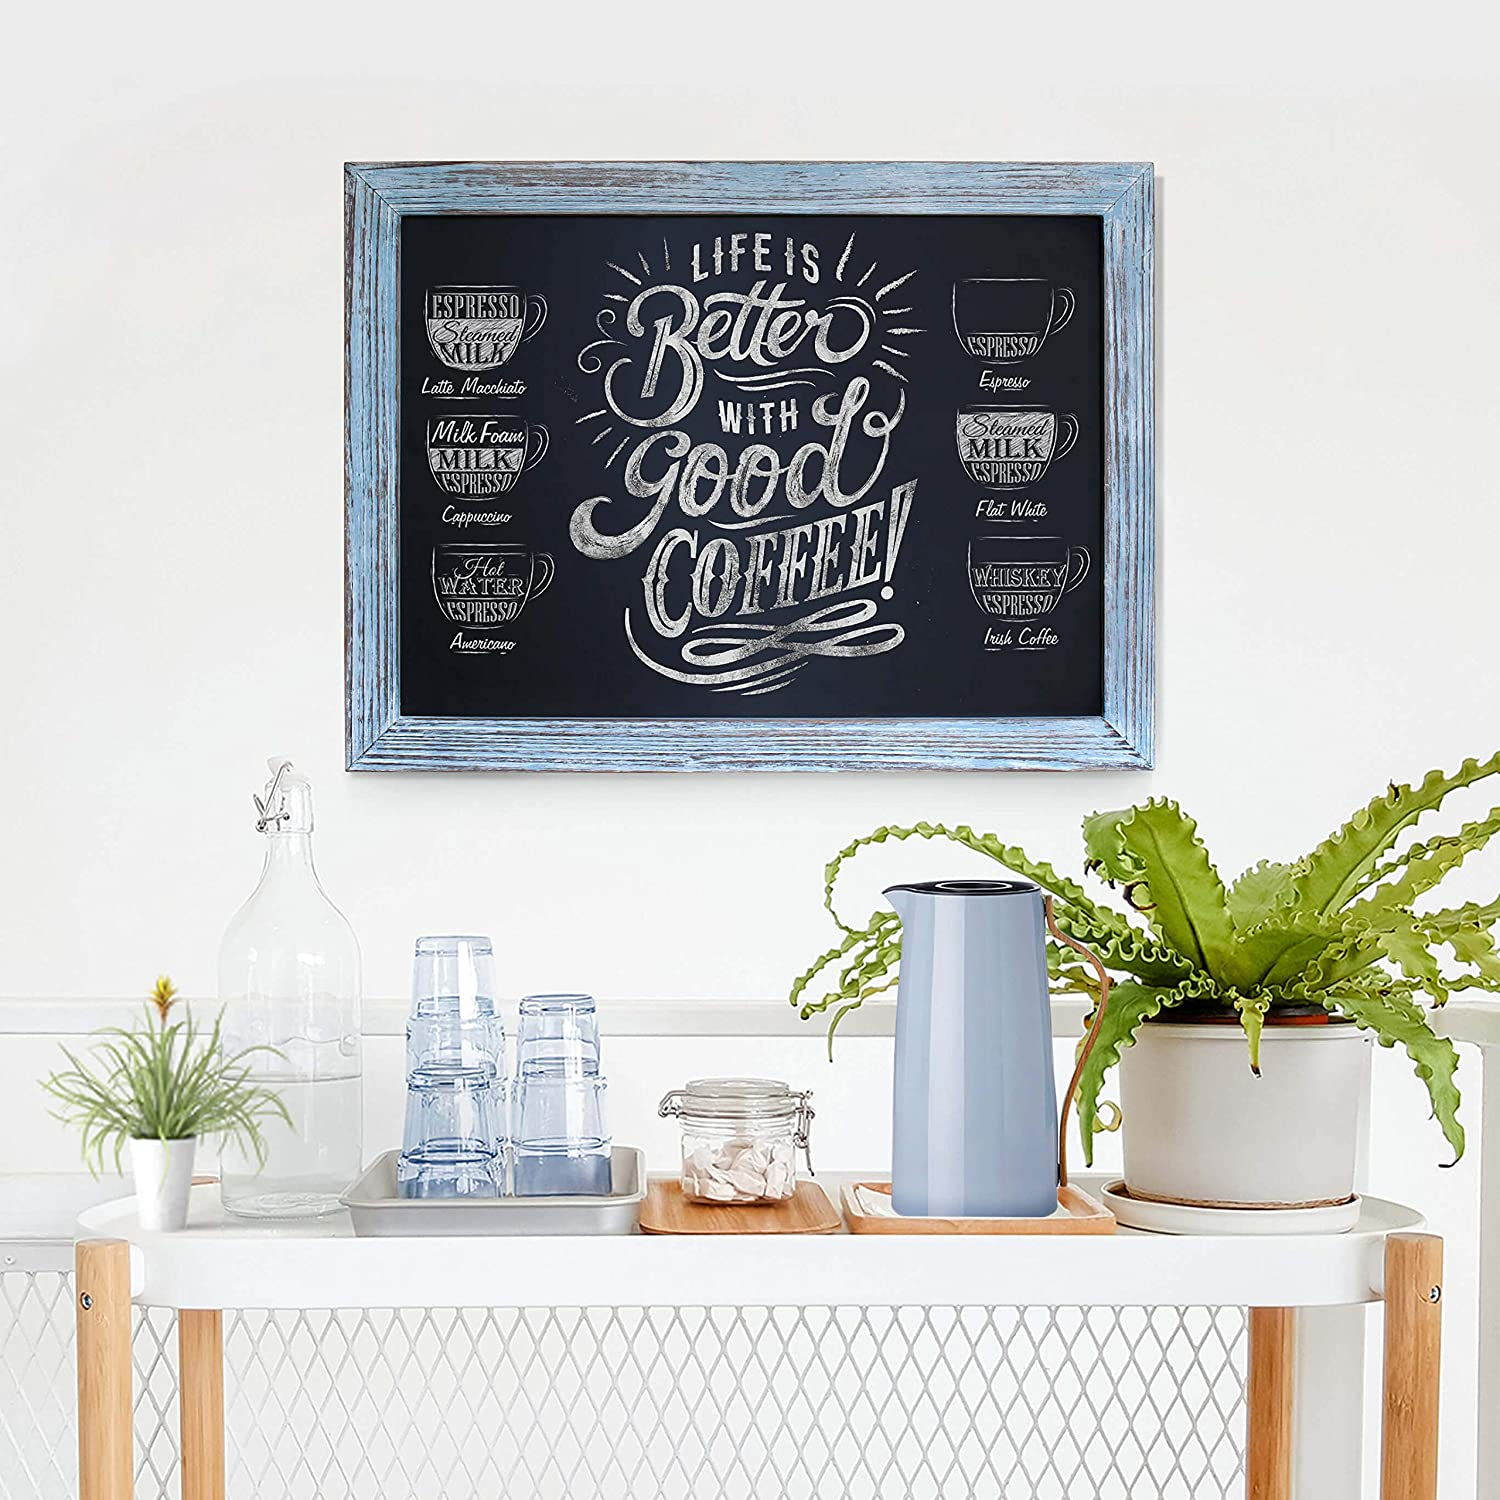 Rustic Blue Magnetic Wall Chalkboard, Framed Decorative - Great for Kitchen Decor, Weddings, Restaurant Menus and More - Yola WhiteBoard | szyola.net